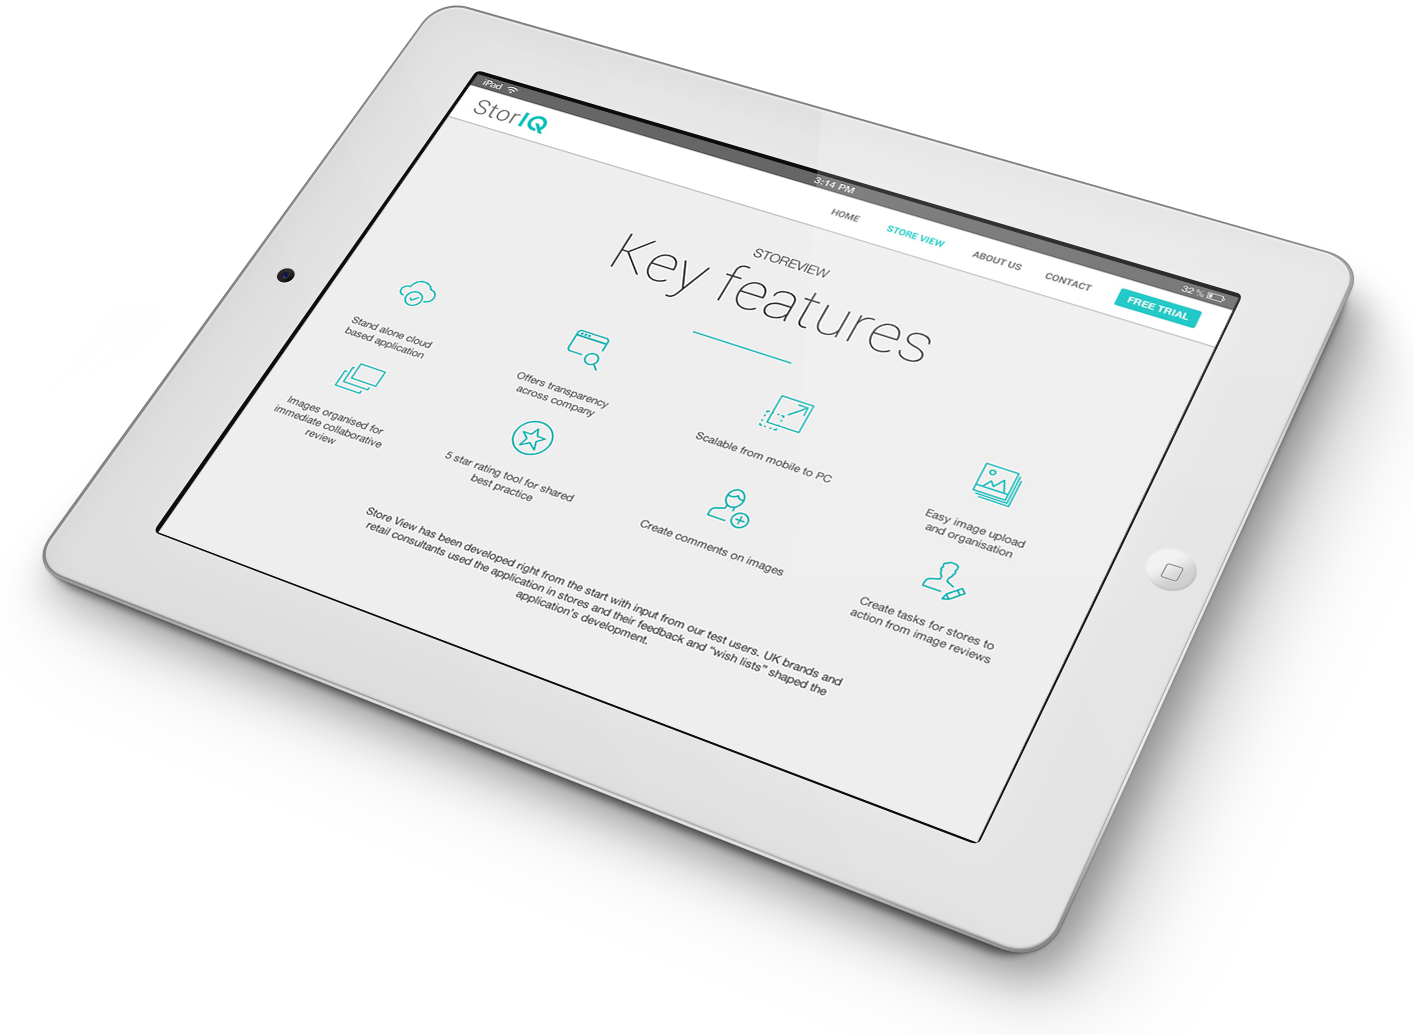 StorIQ website design and development on iPad